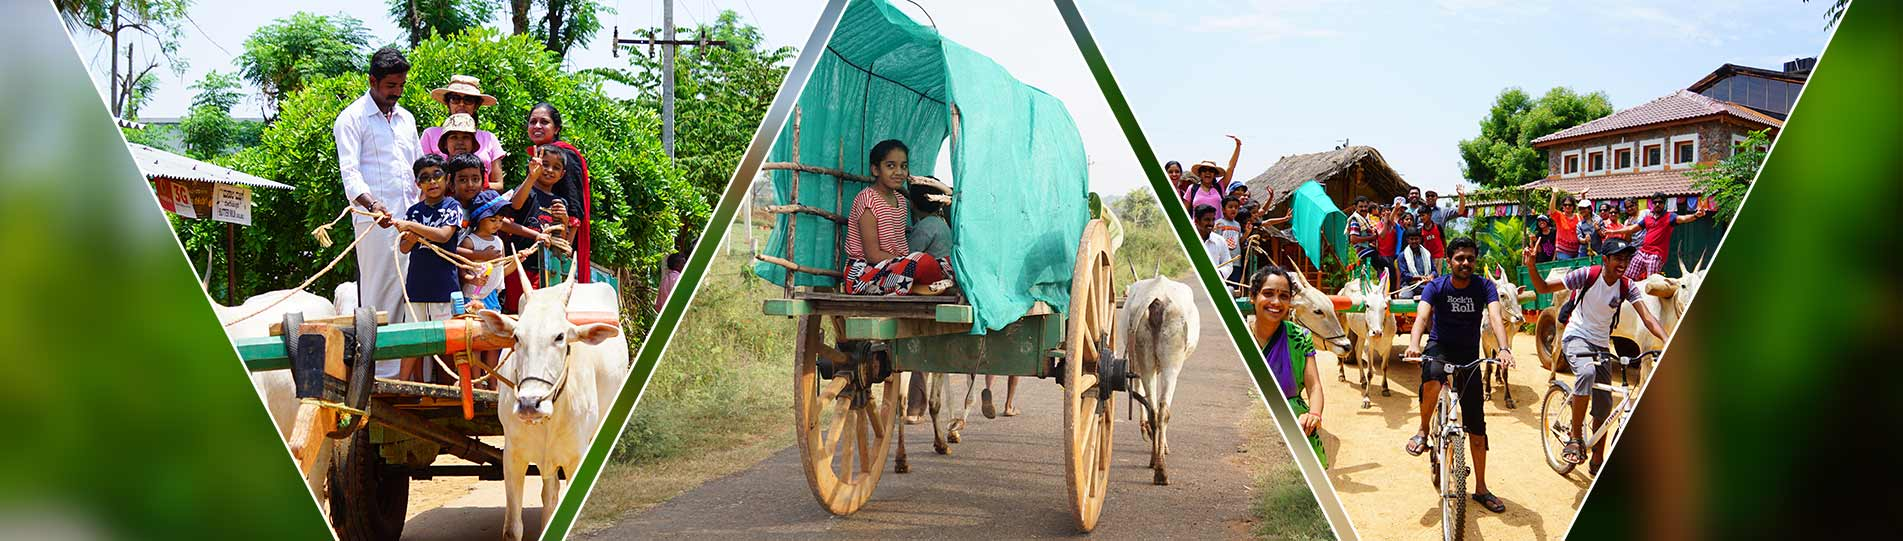 Bullock Cart Ride at Chukkimane